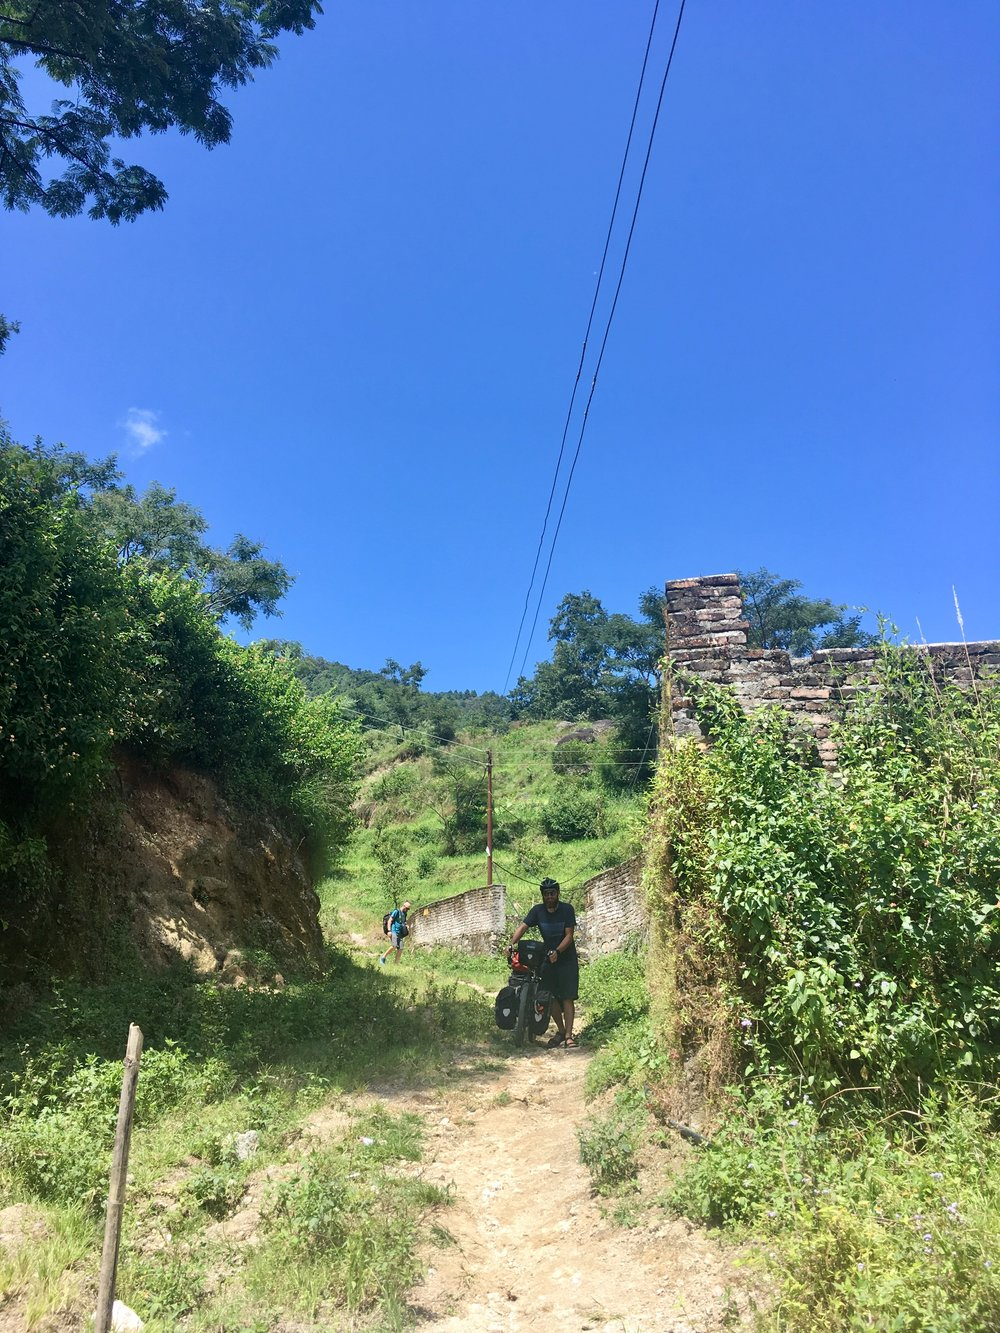 If you remember, the road to Shivapuri Heights Cottage was closed due to a landslide, and we had to use a hiking trail to get there. Well, as you'd expect, going down was much easier than going up. The bikes pretty much walked themselves.